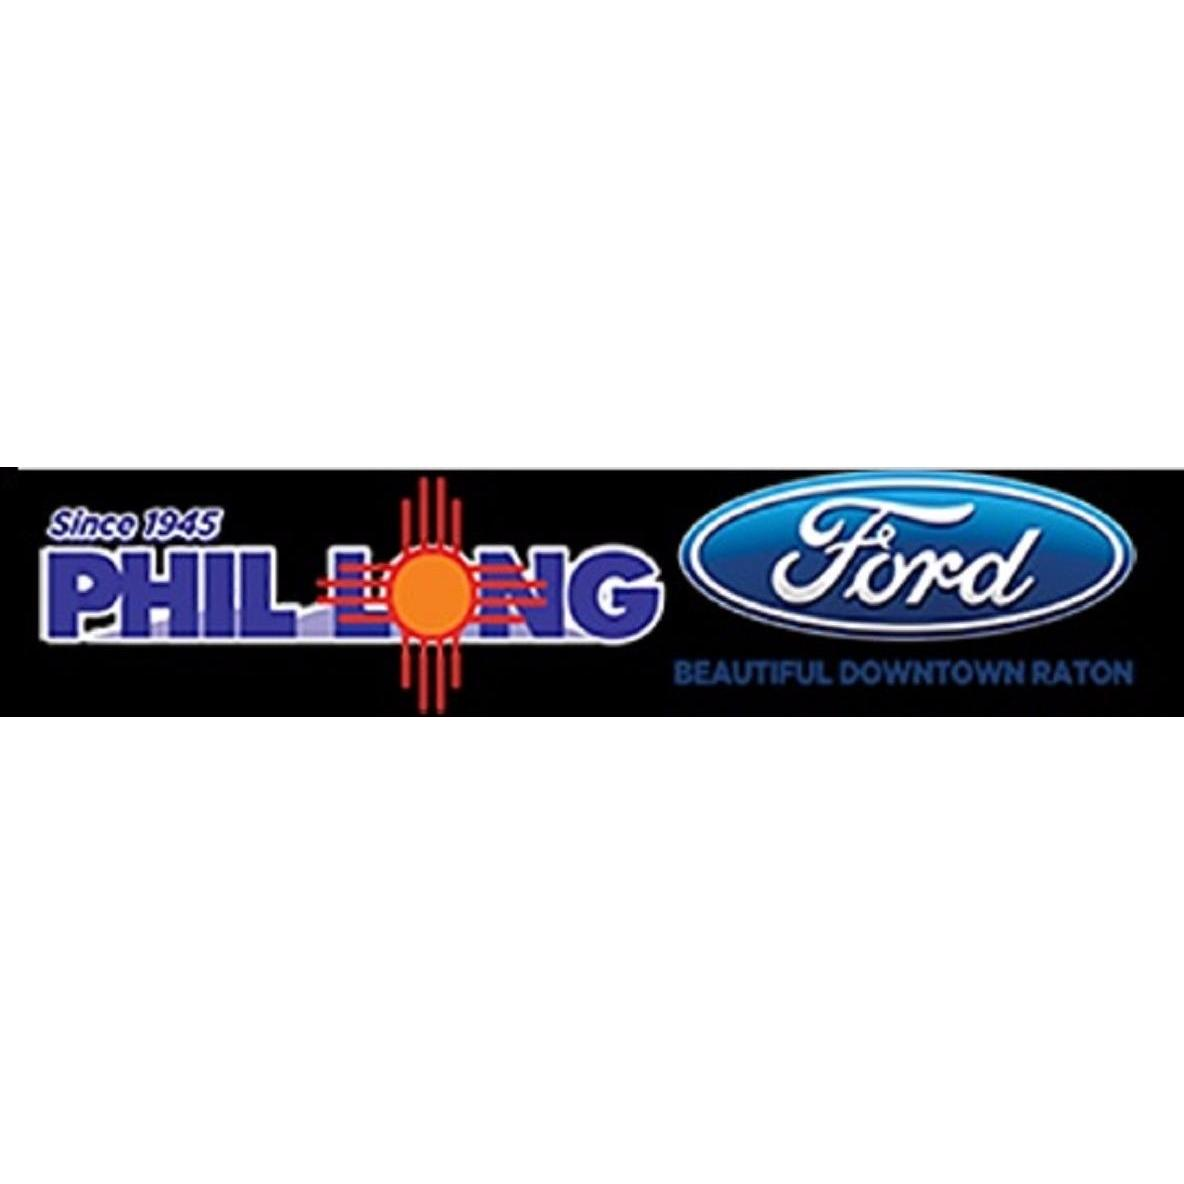 Phil Long Ford Raton >> Phil Long Ford of Raton - Raton, NM - Business Page